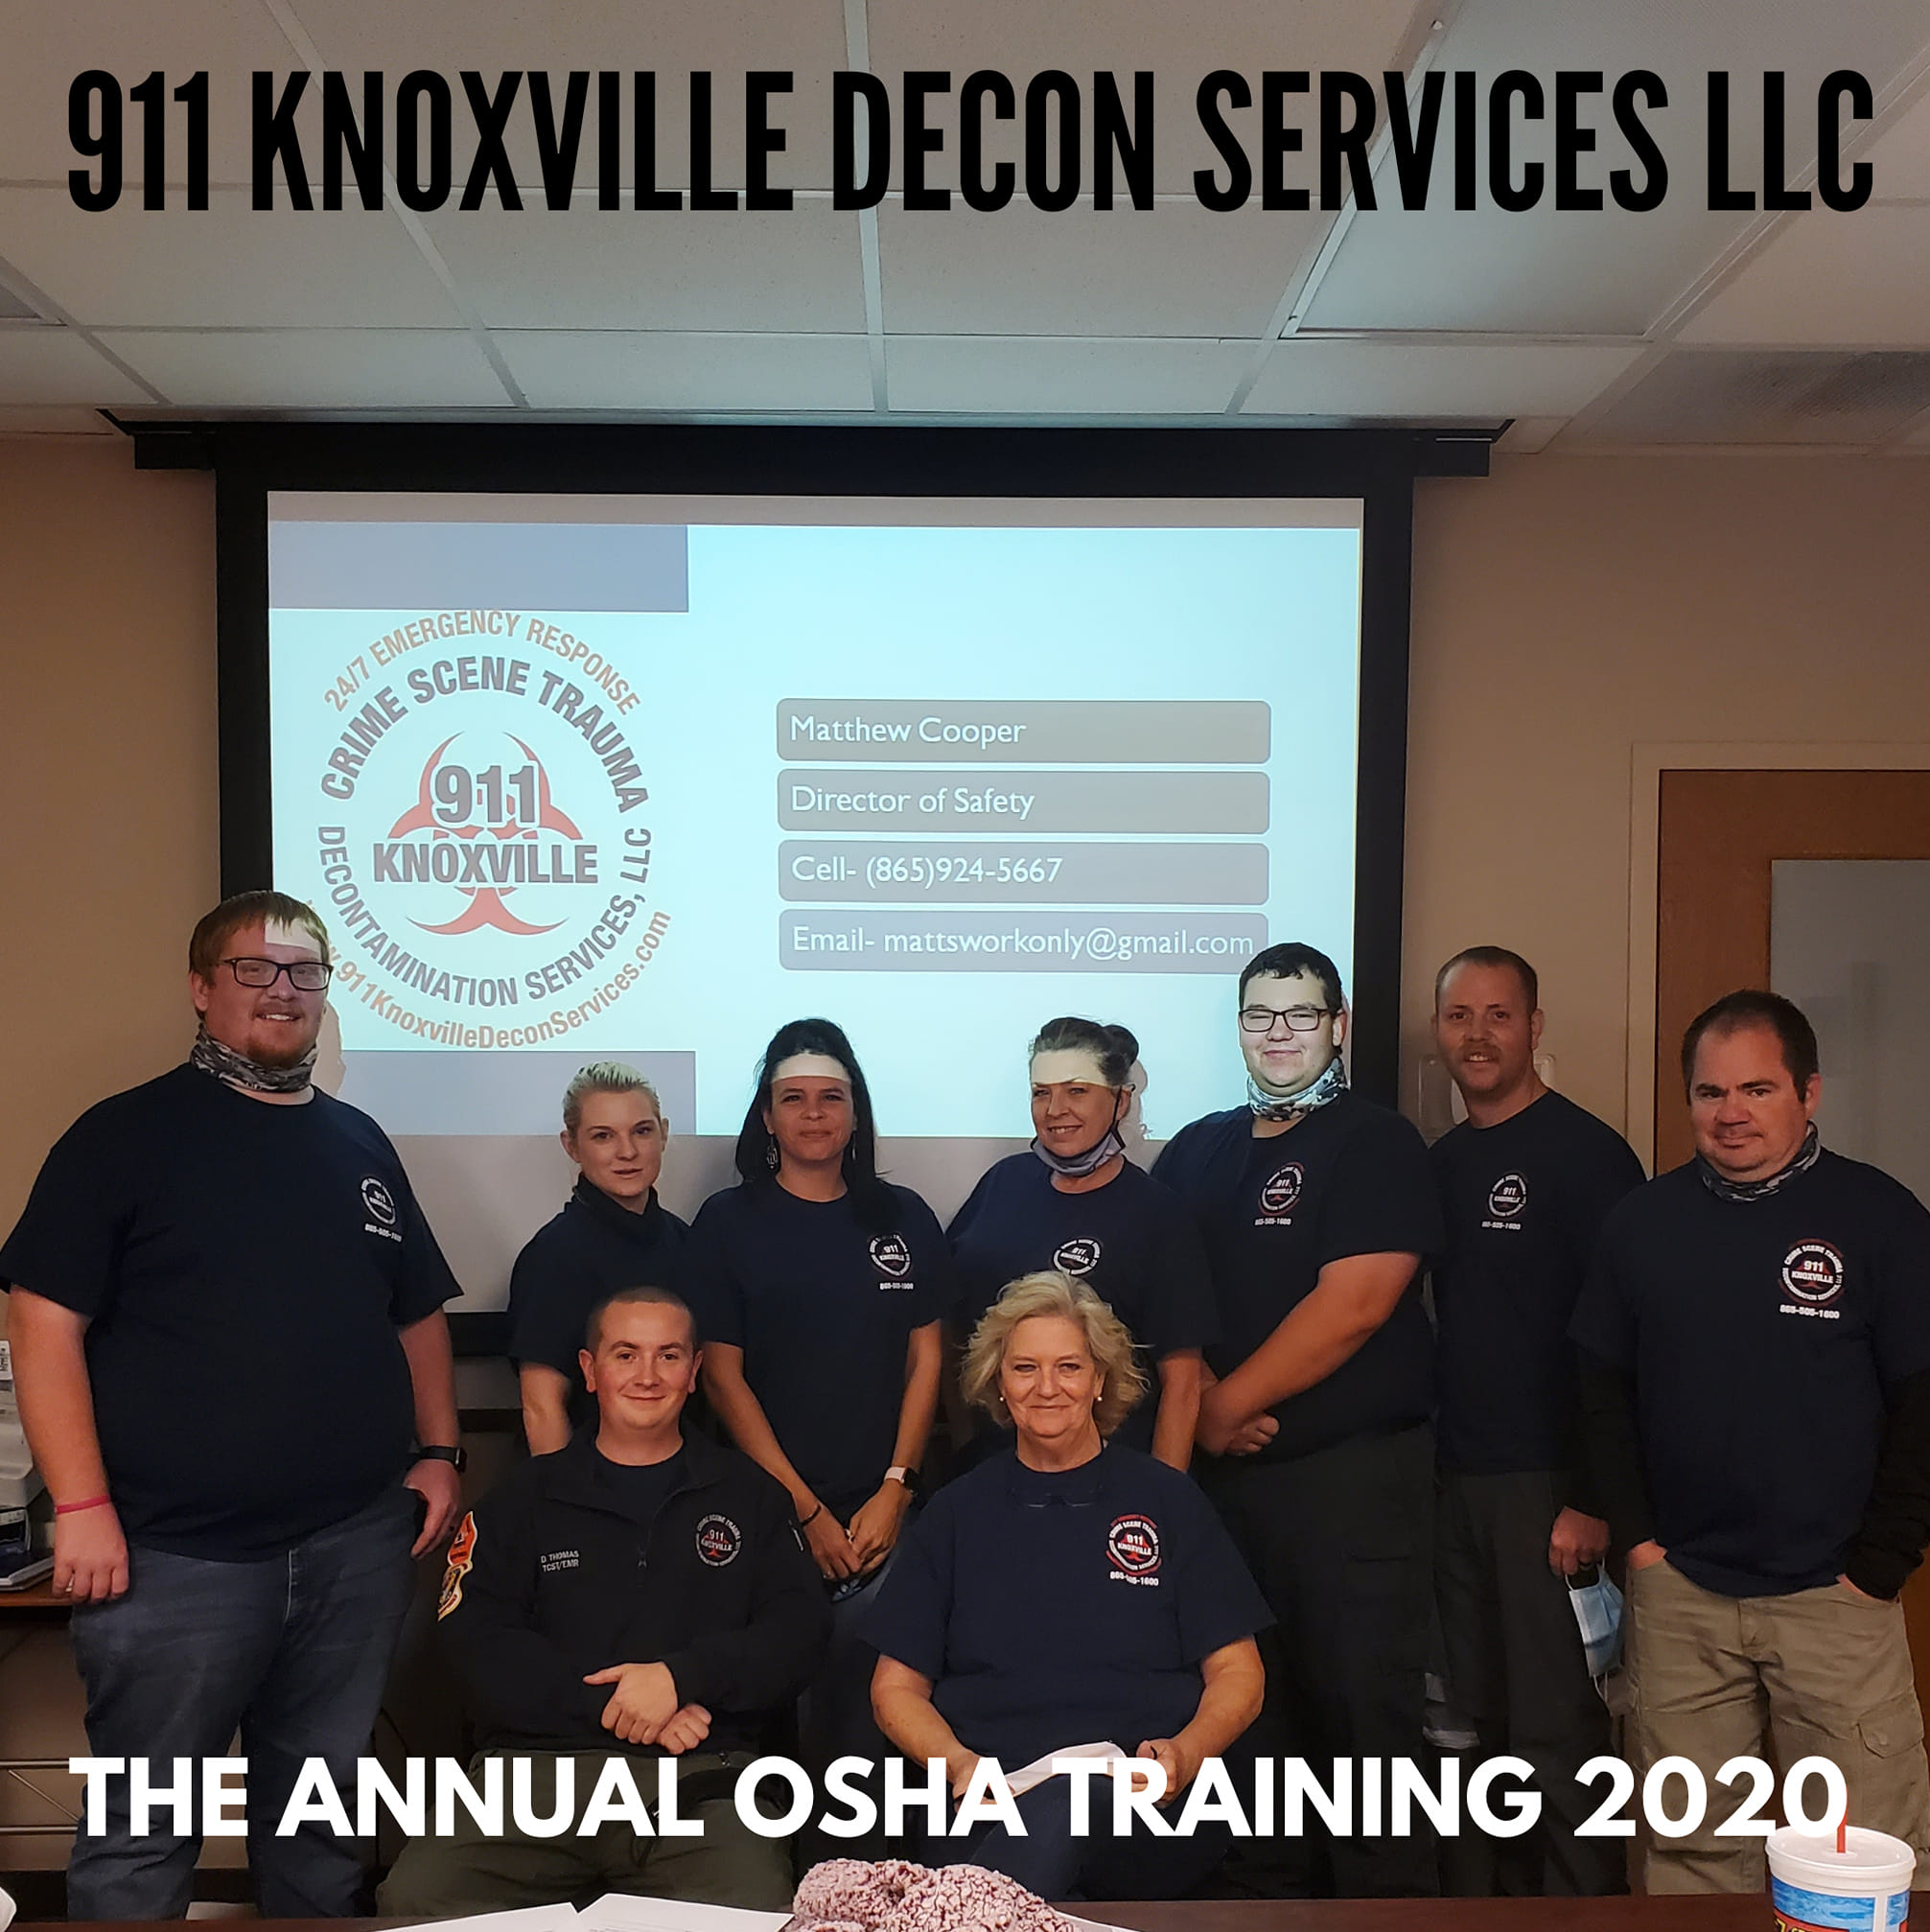 Thanks to Sevier County EMS we were able to use their training room for our Annual OSHA Training